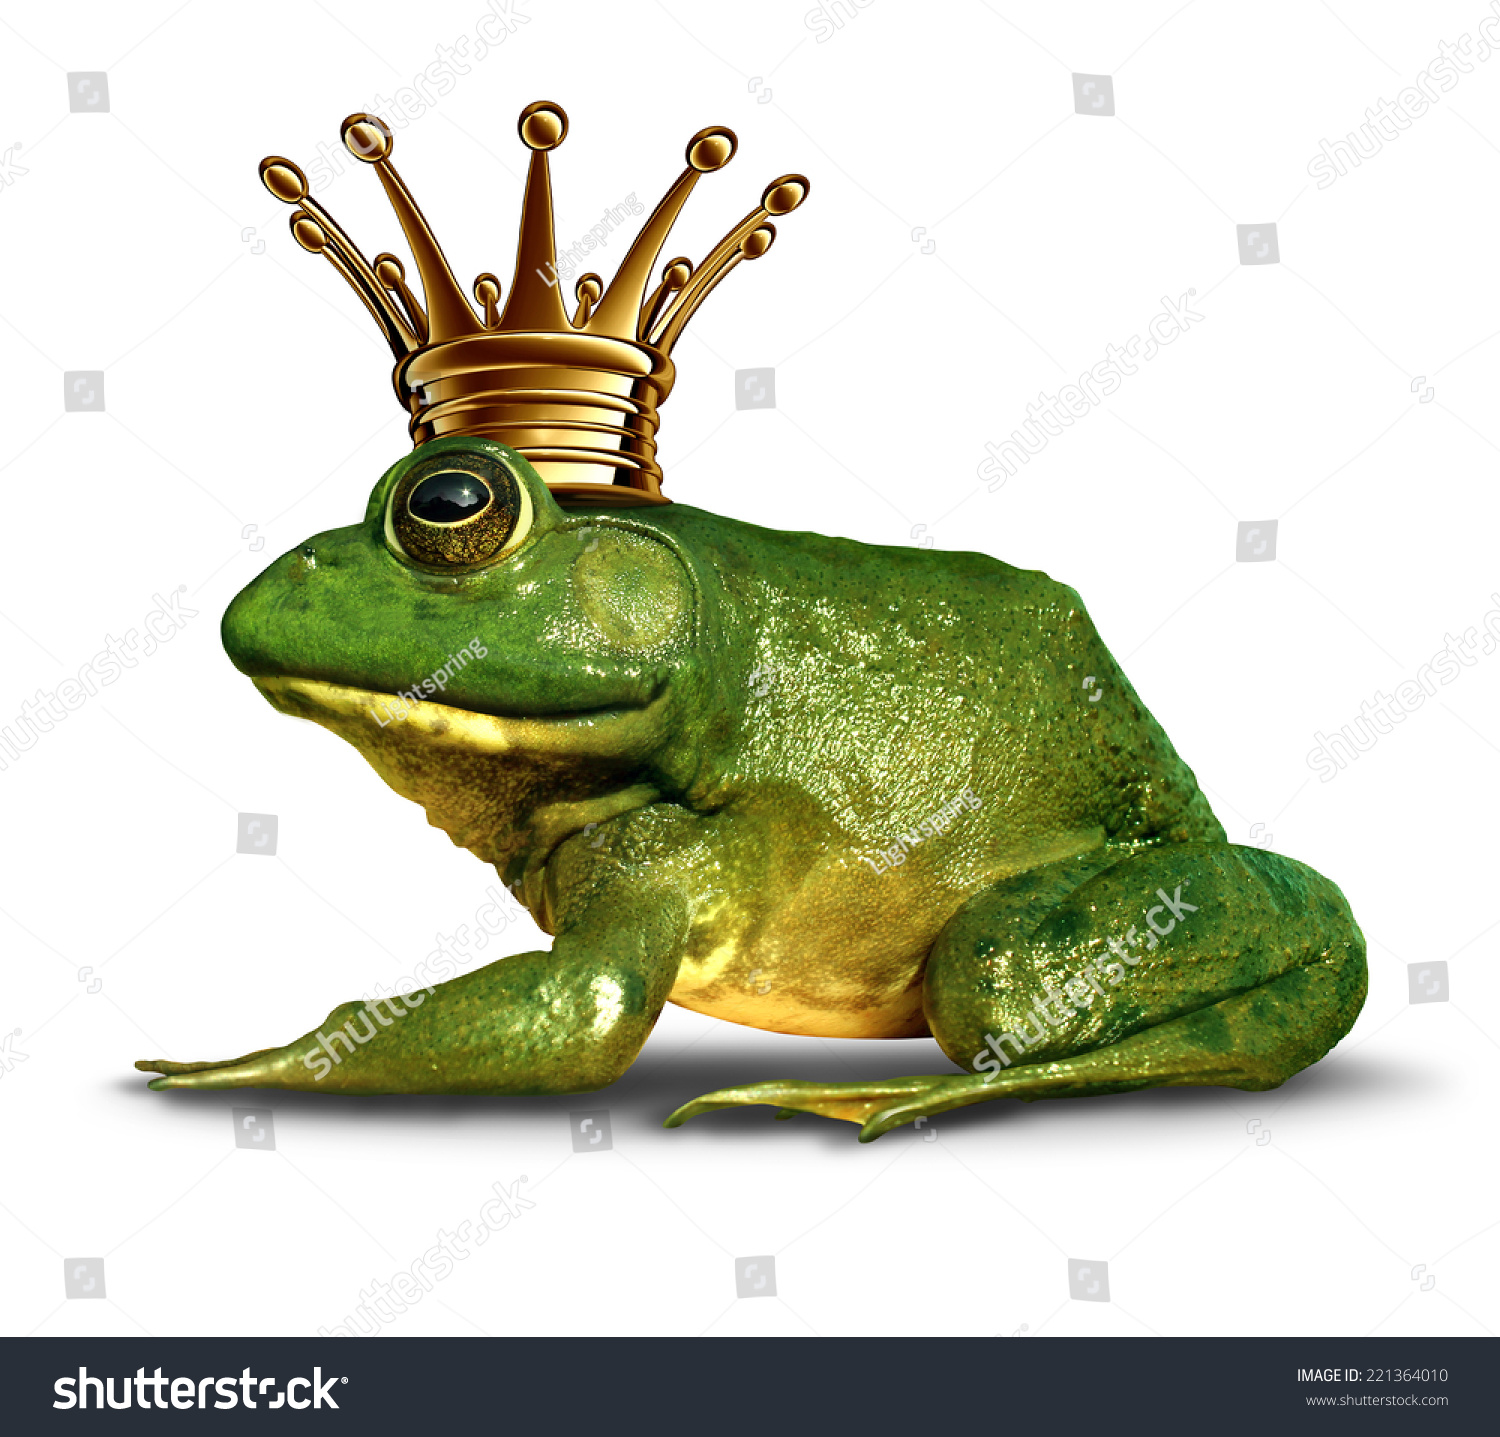 Frog prince side view concept gold stock illustration for Frog transformation